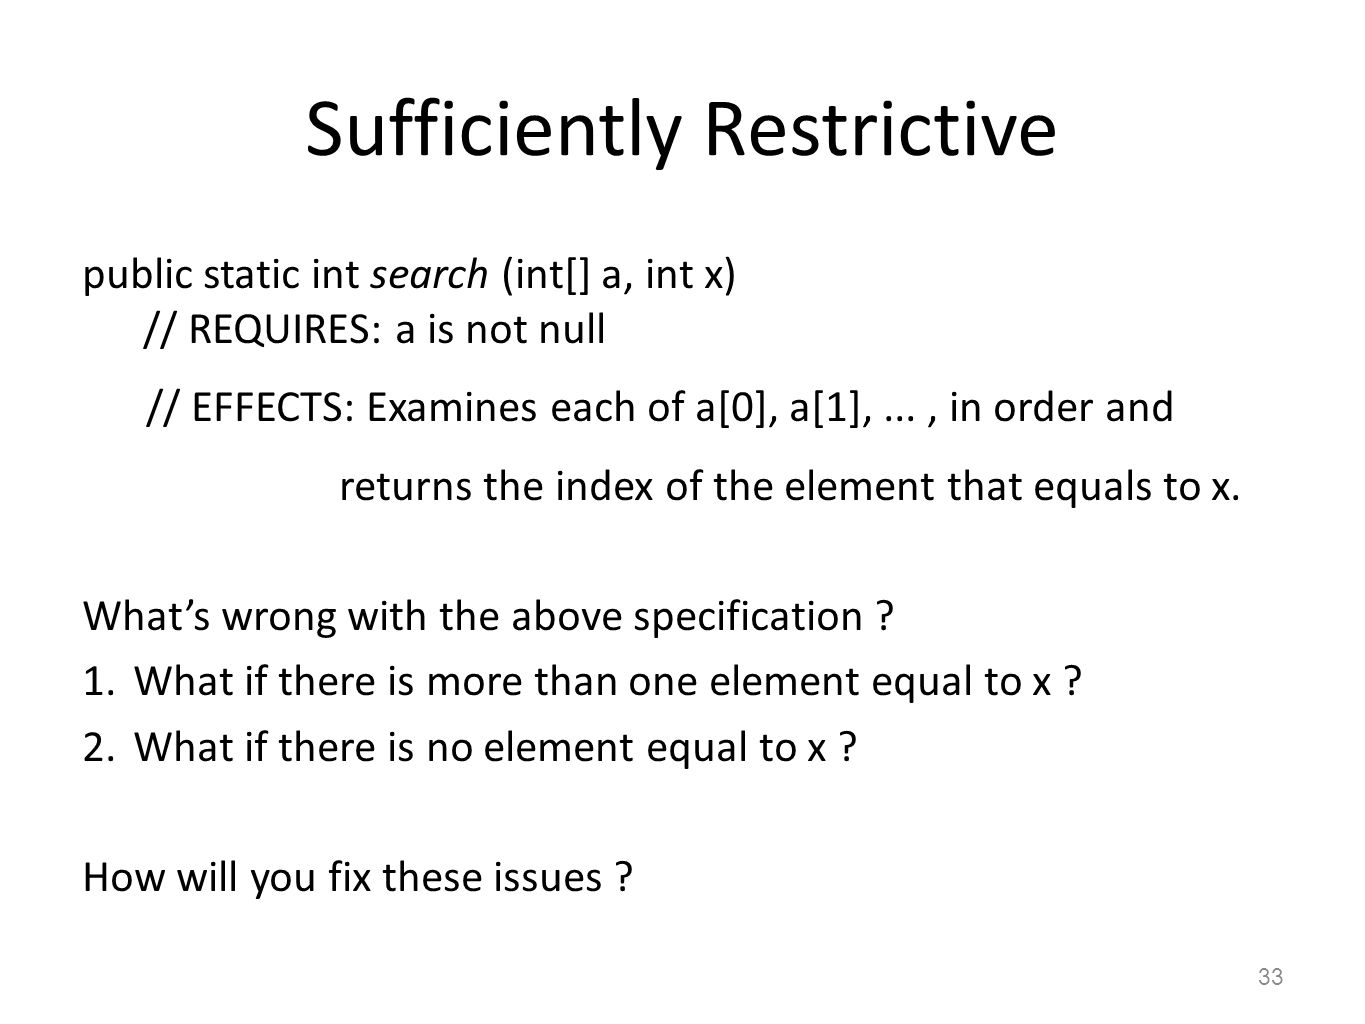 Sufficiently Restrictive public static int search (int[] a, int x) // REQUIRES: a is not null // EFFECTS: Examines each of a[0], a[1],..., in order an